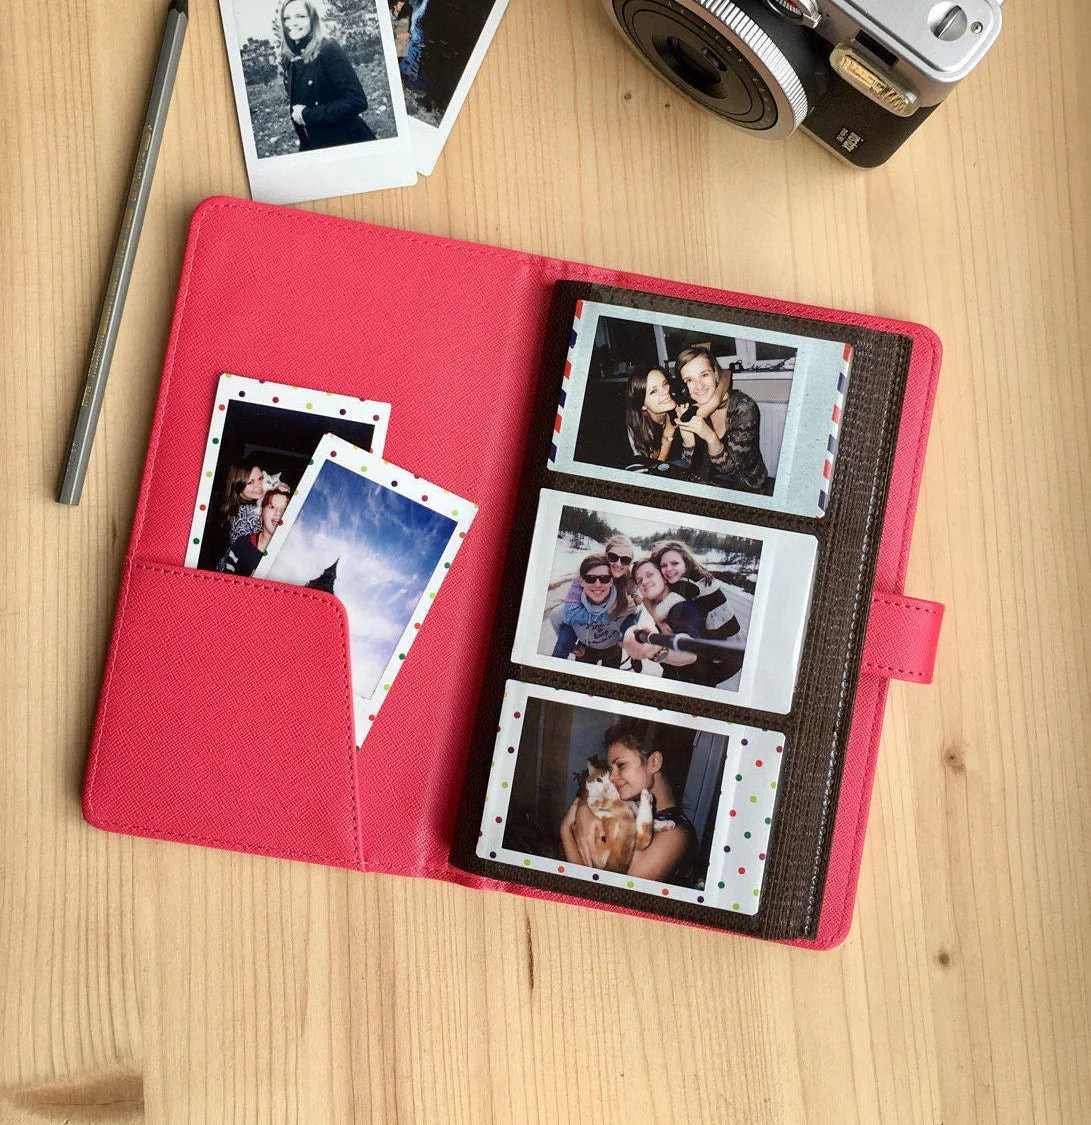 Instax Photo Album For Instax Mini Size Instax Photo Album